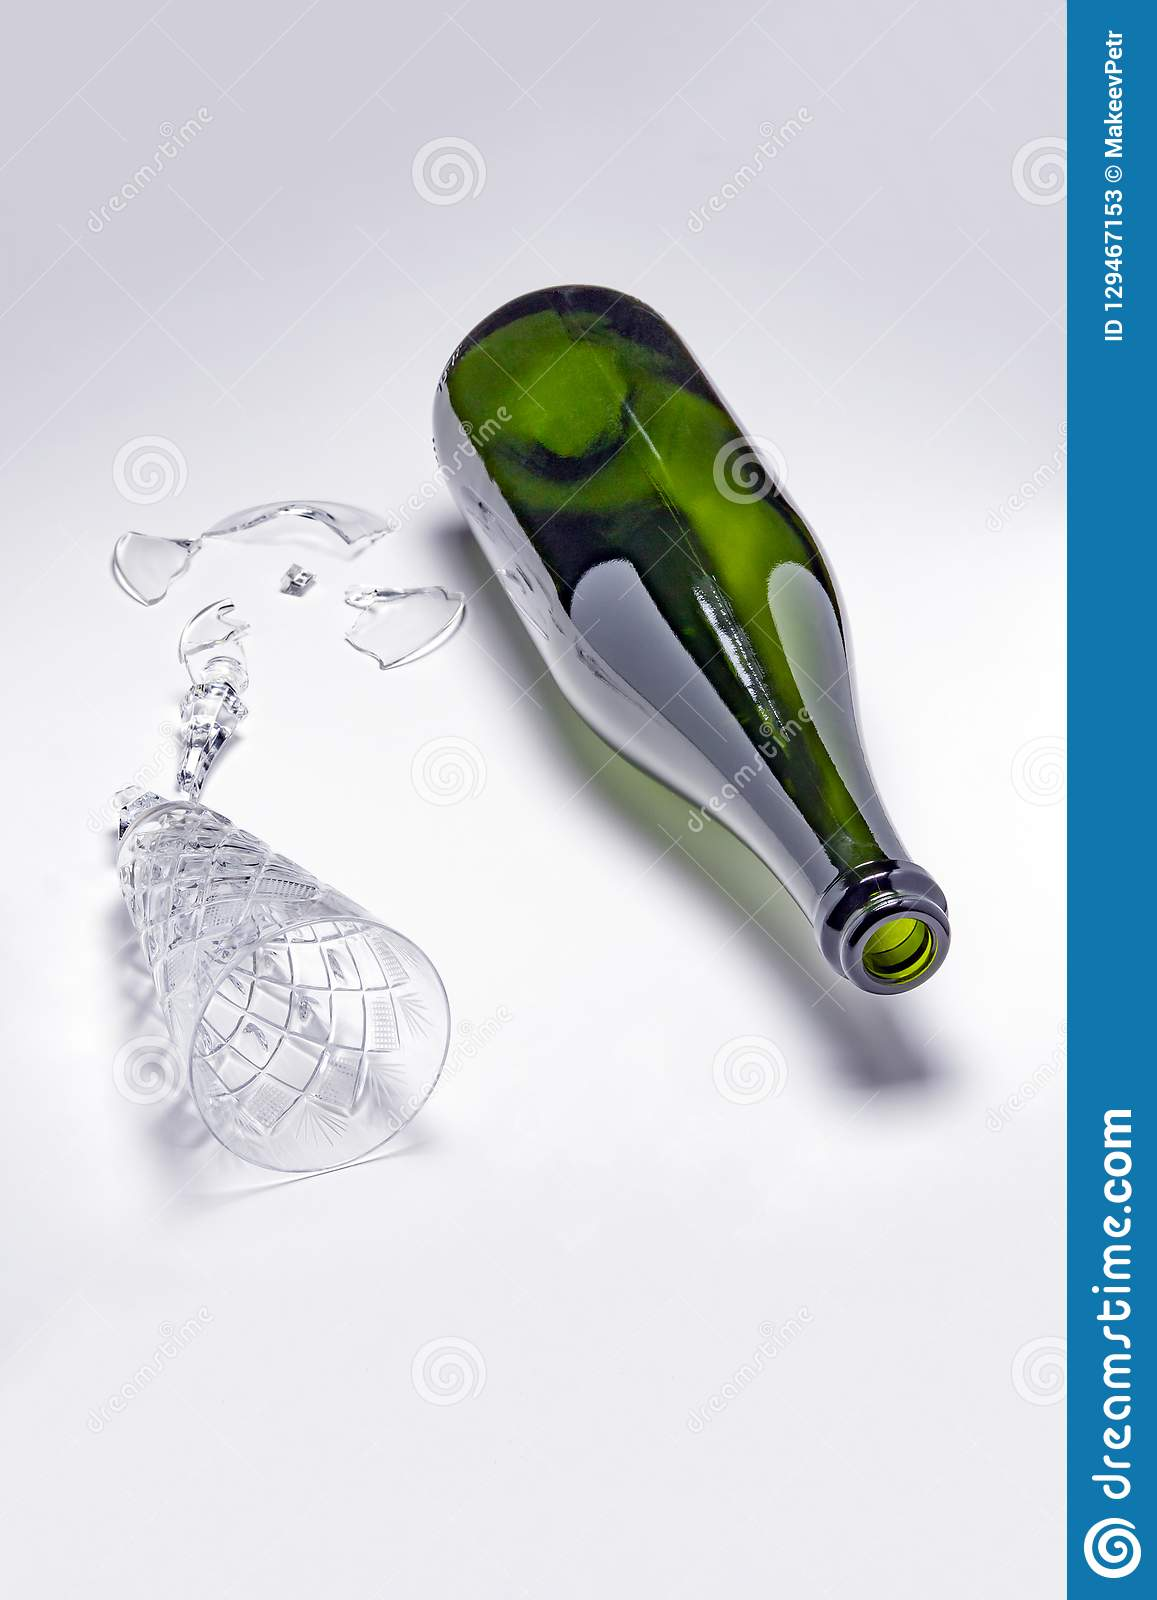 Empty champagne bottle and broken wine glass